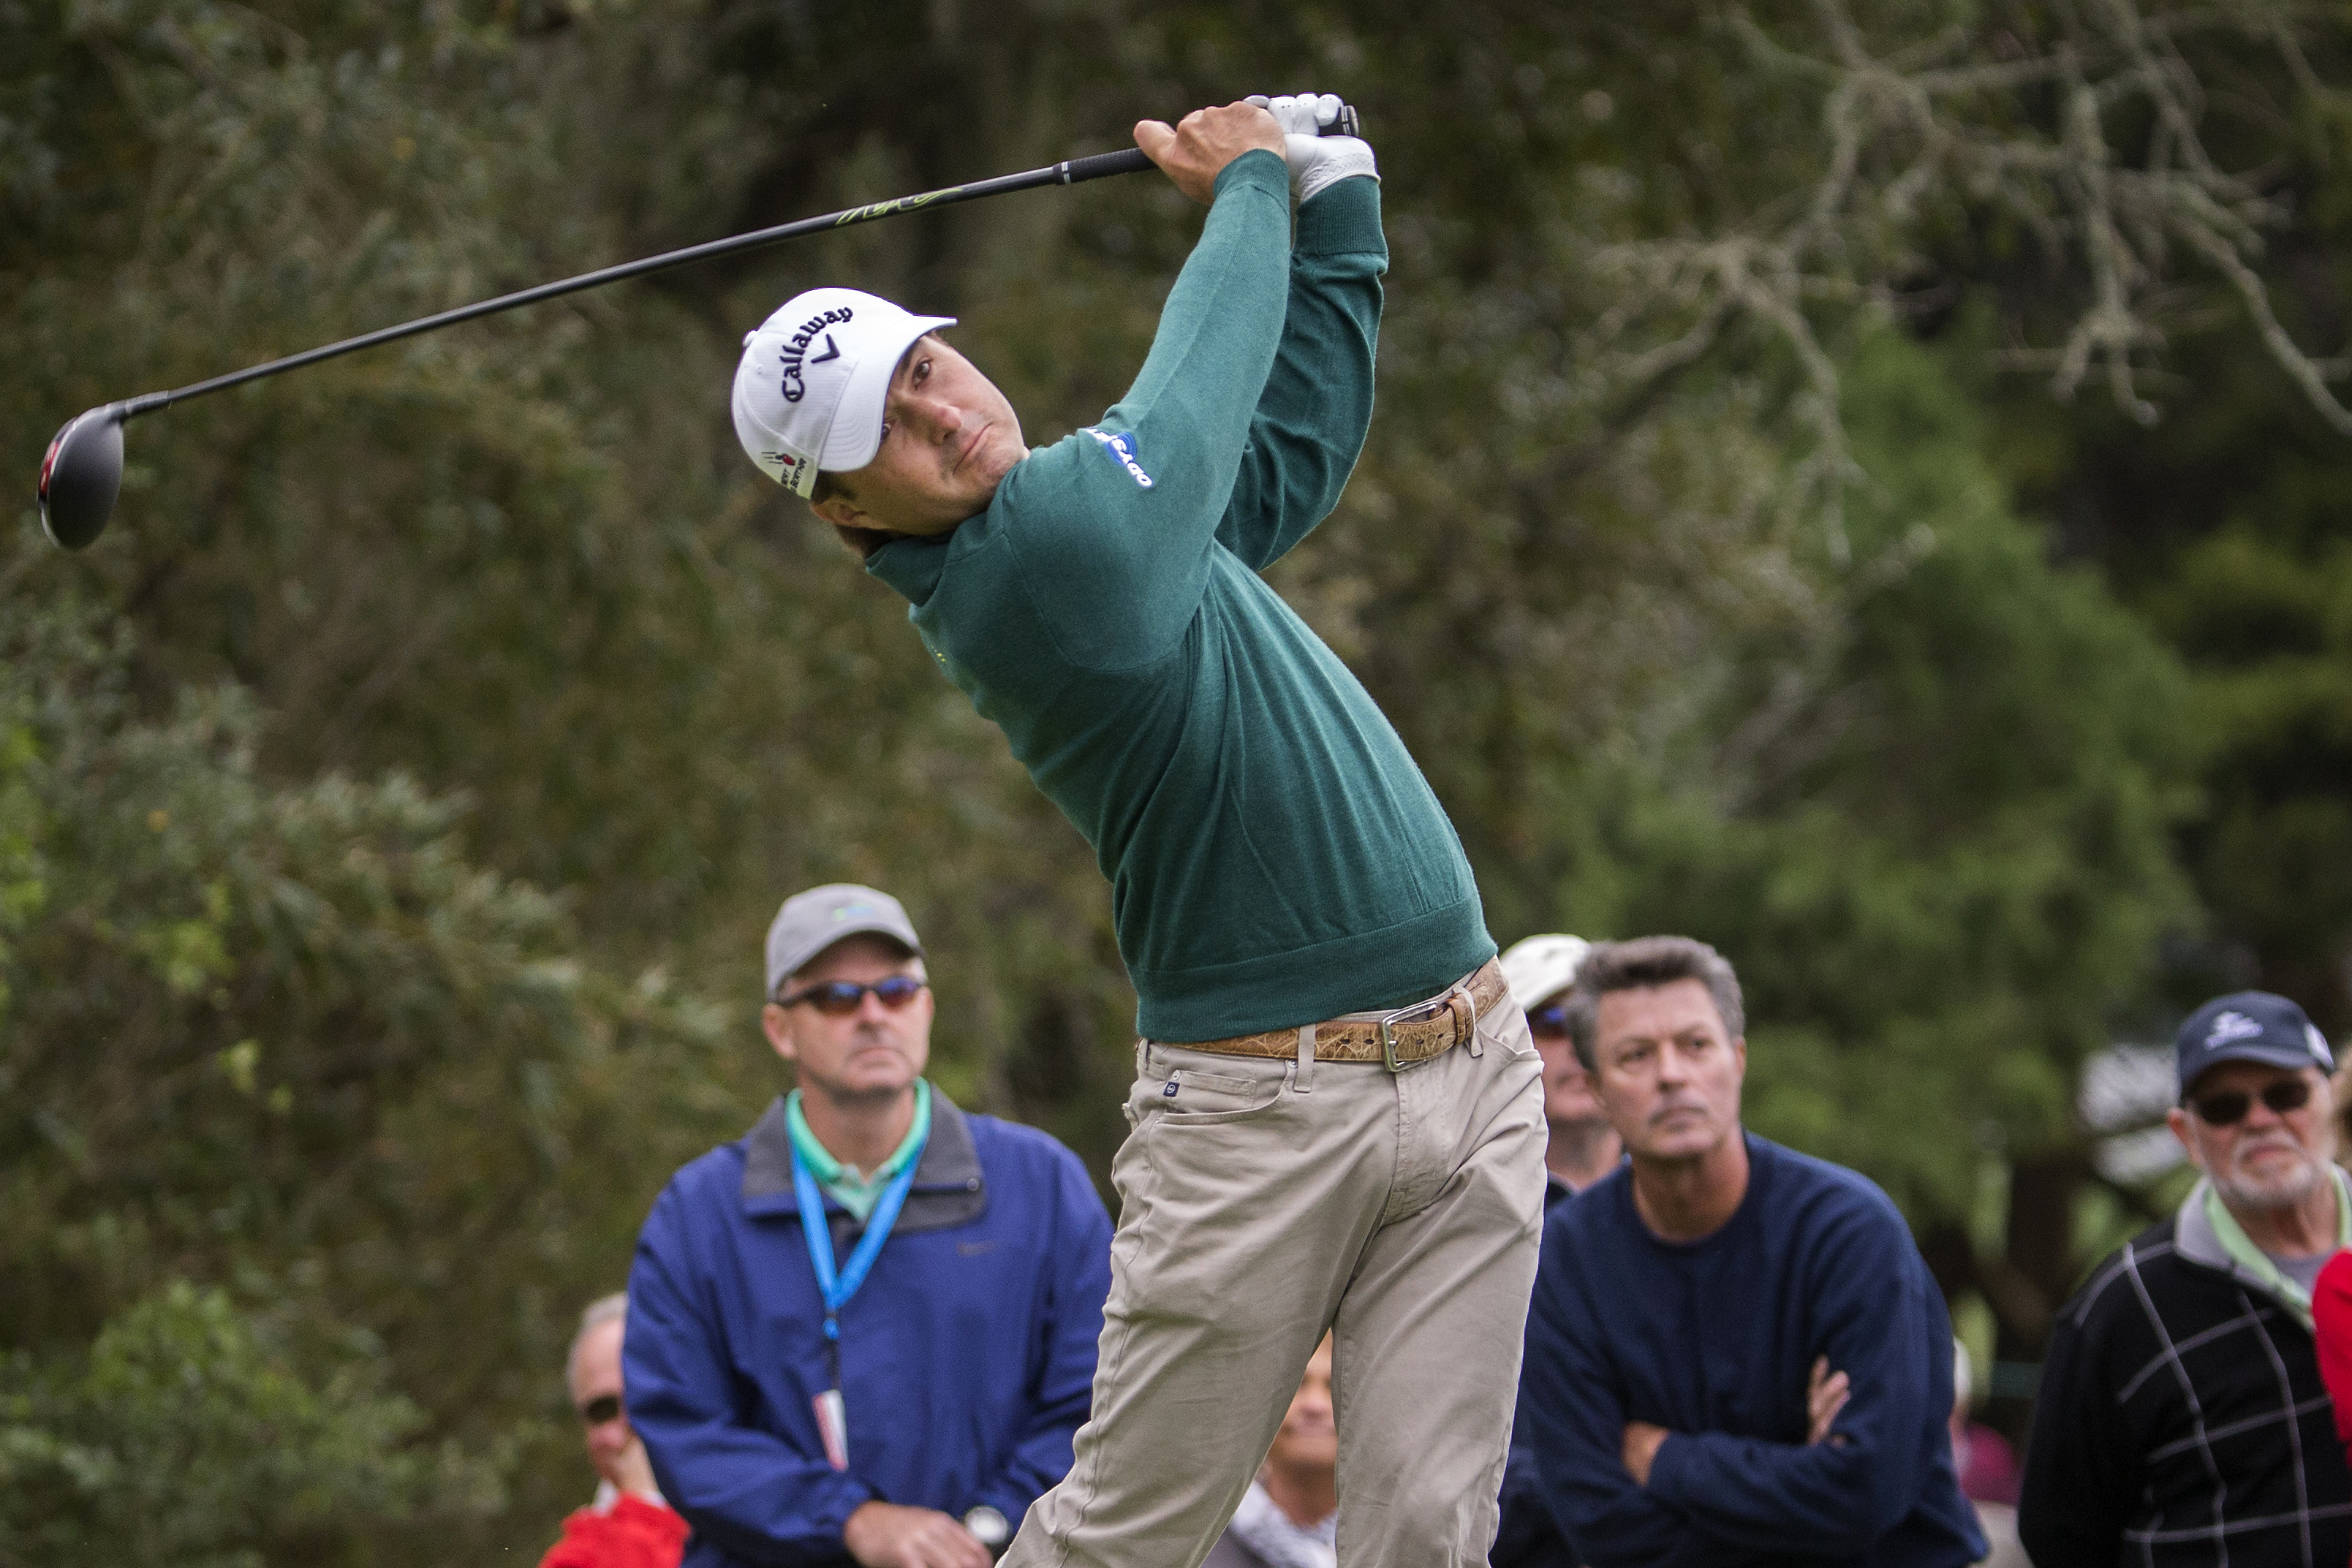 Kevin Kisner watches his drive off the second tee during the final round at the RSM Classic golf tournament, Sunday, Nov. 22, 2015, in St. Simons Island, Ga. (AP Photo/Stephen B. Morton)